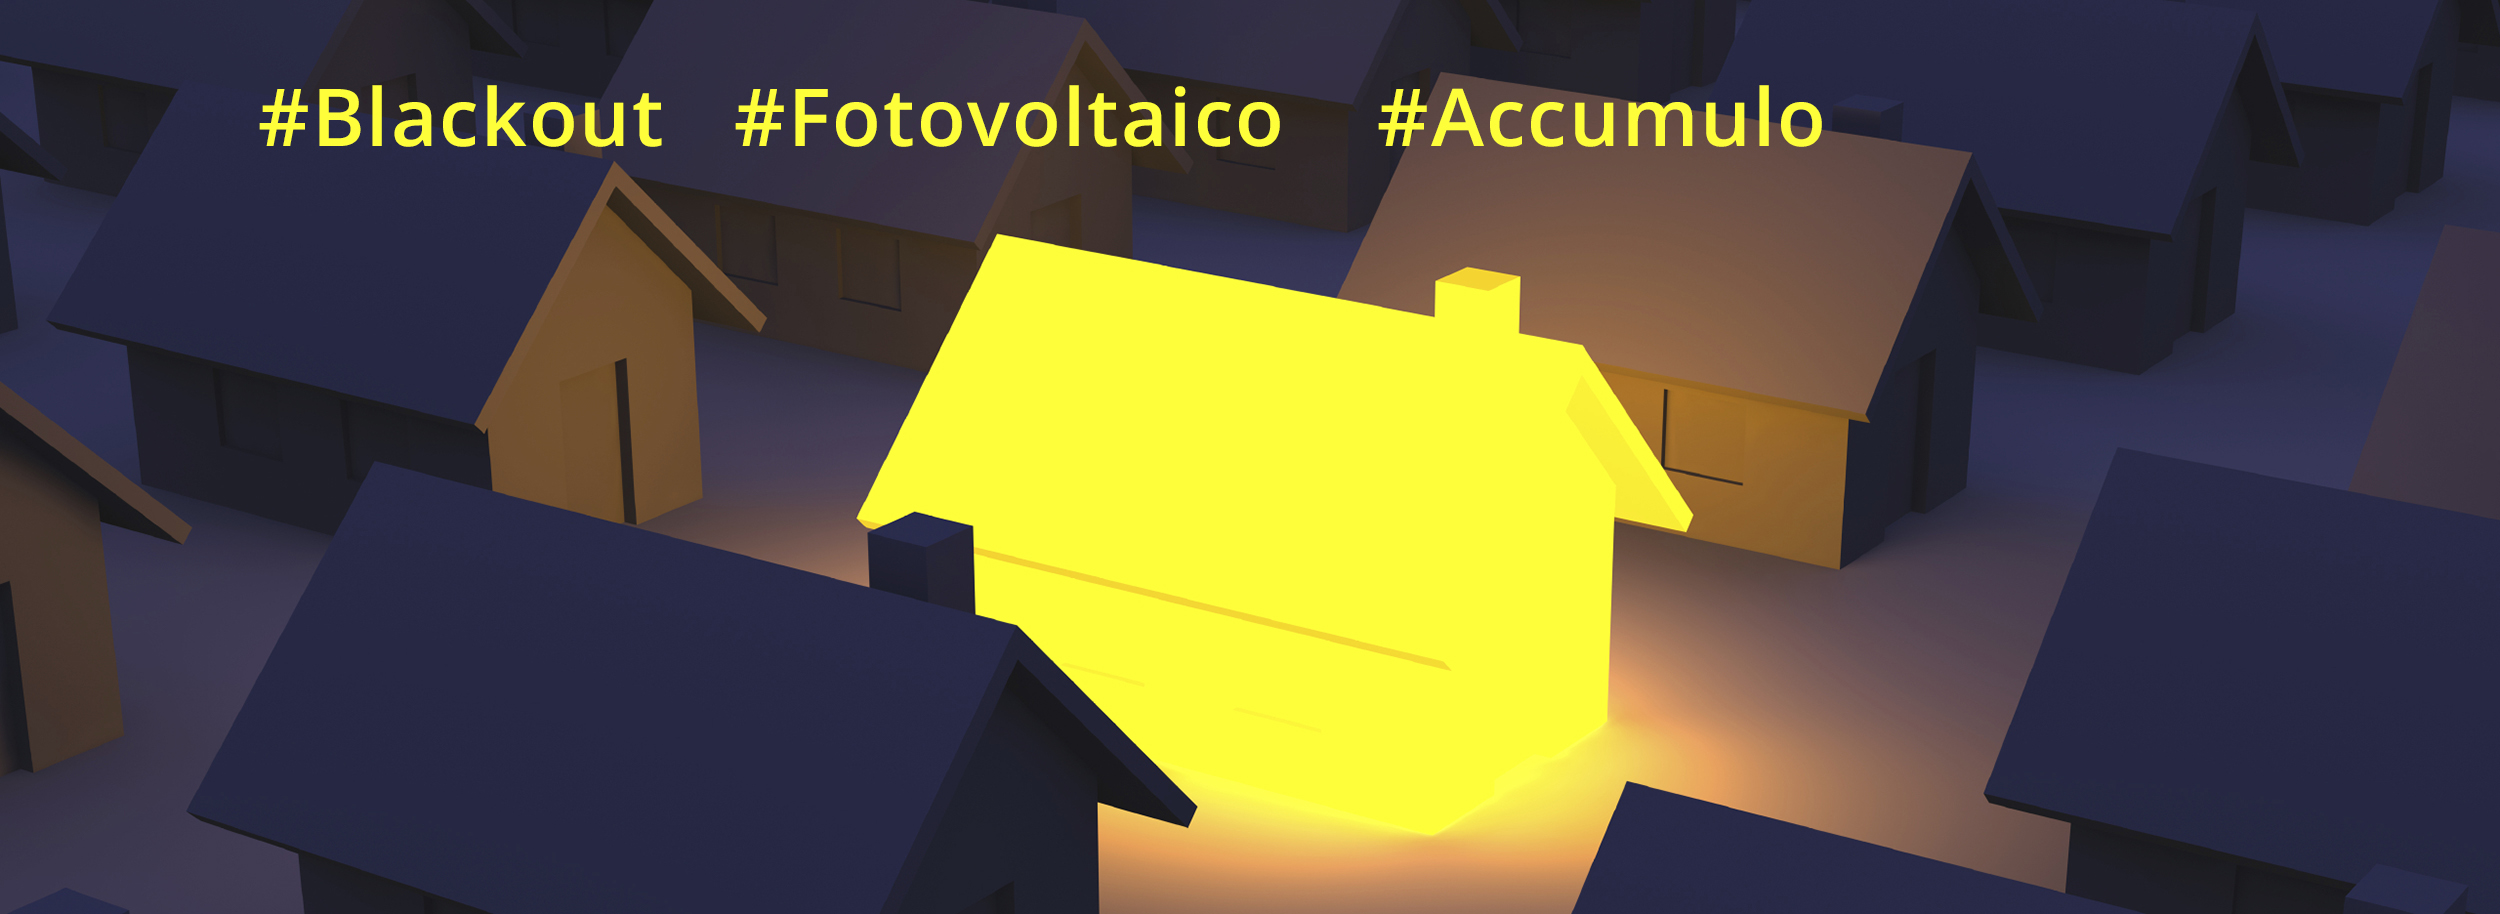 accumulo corrente blackout